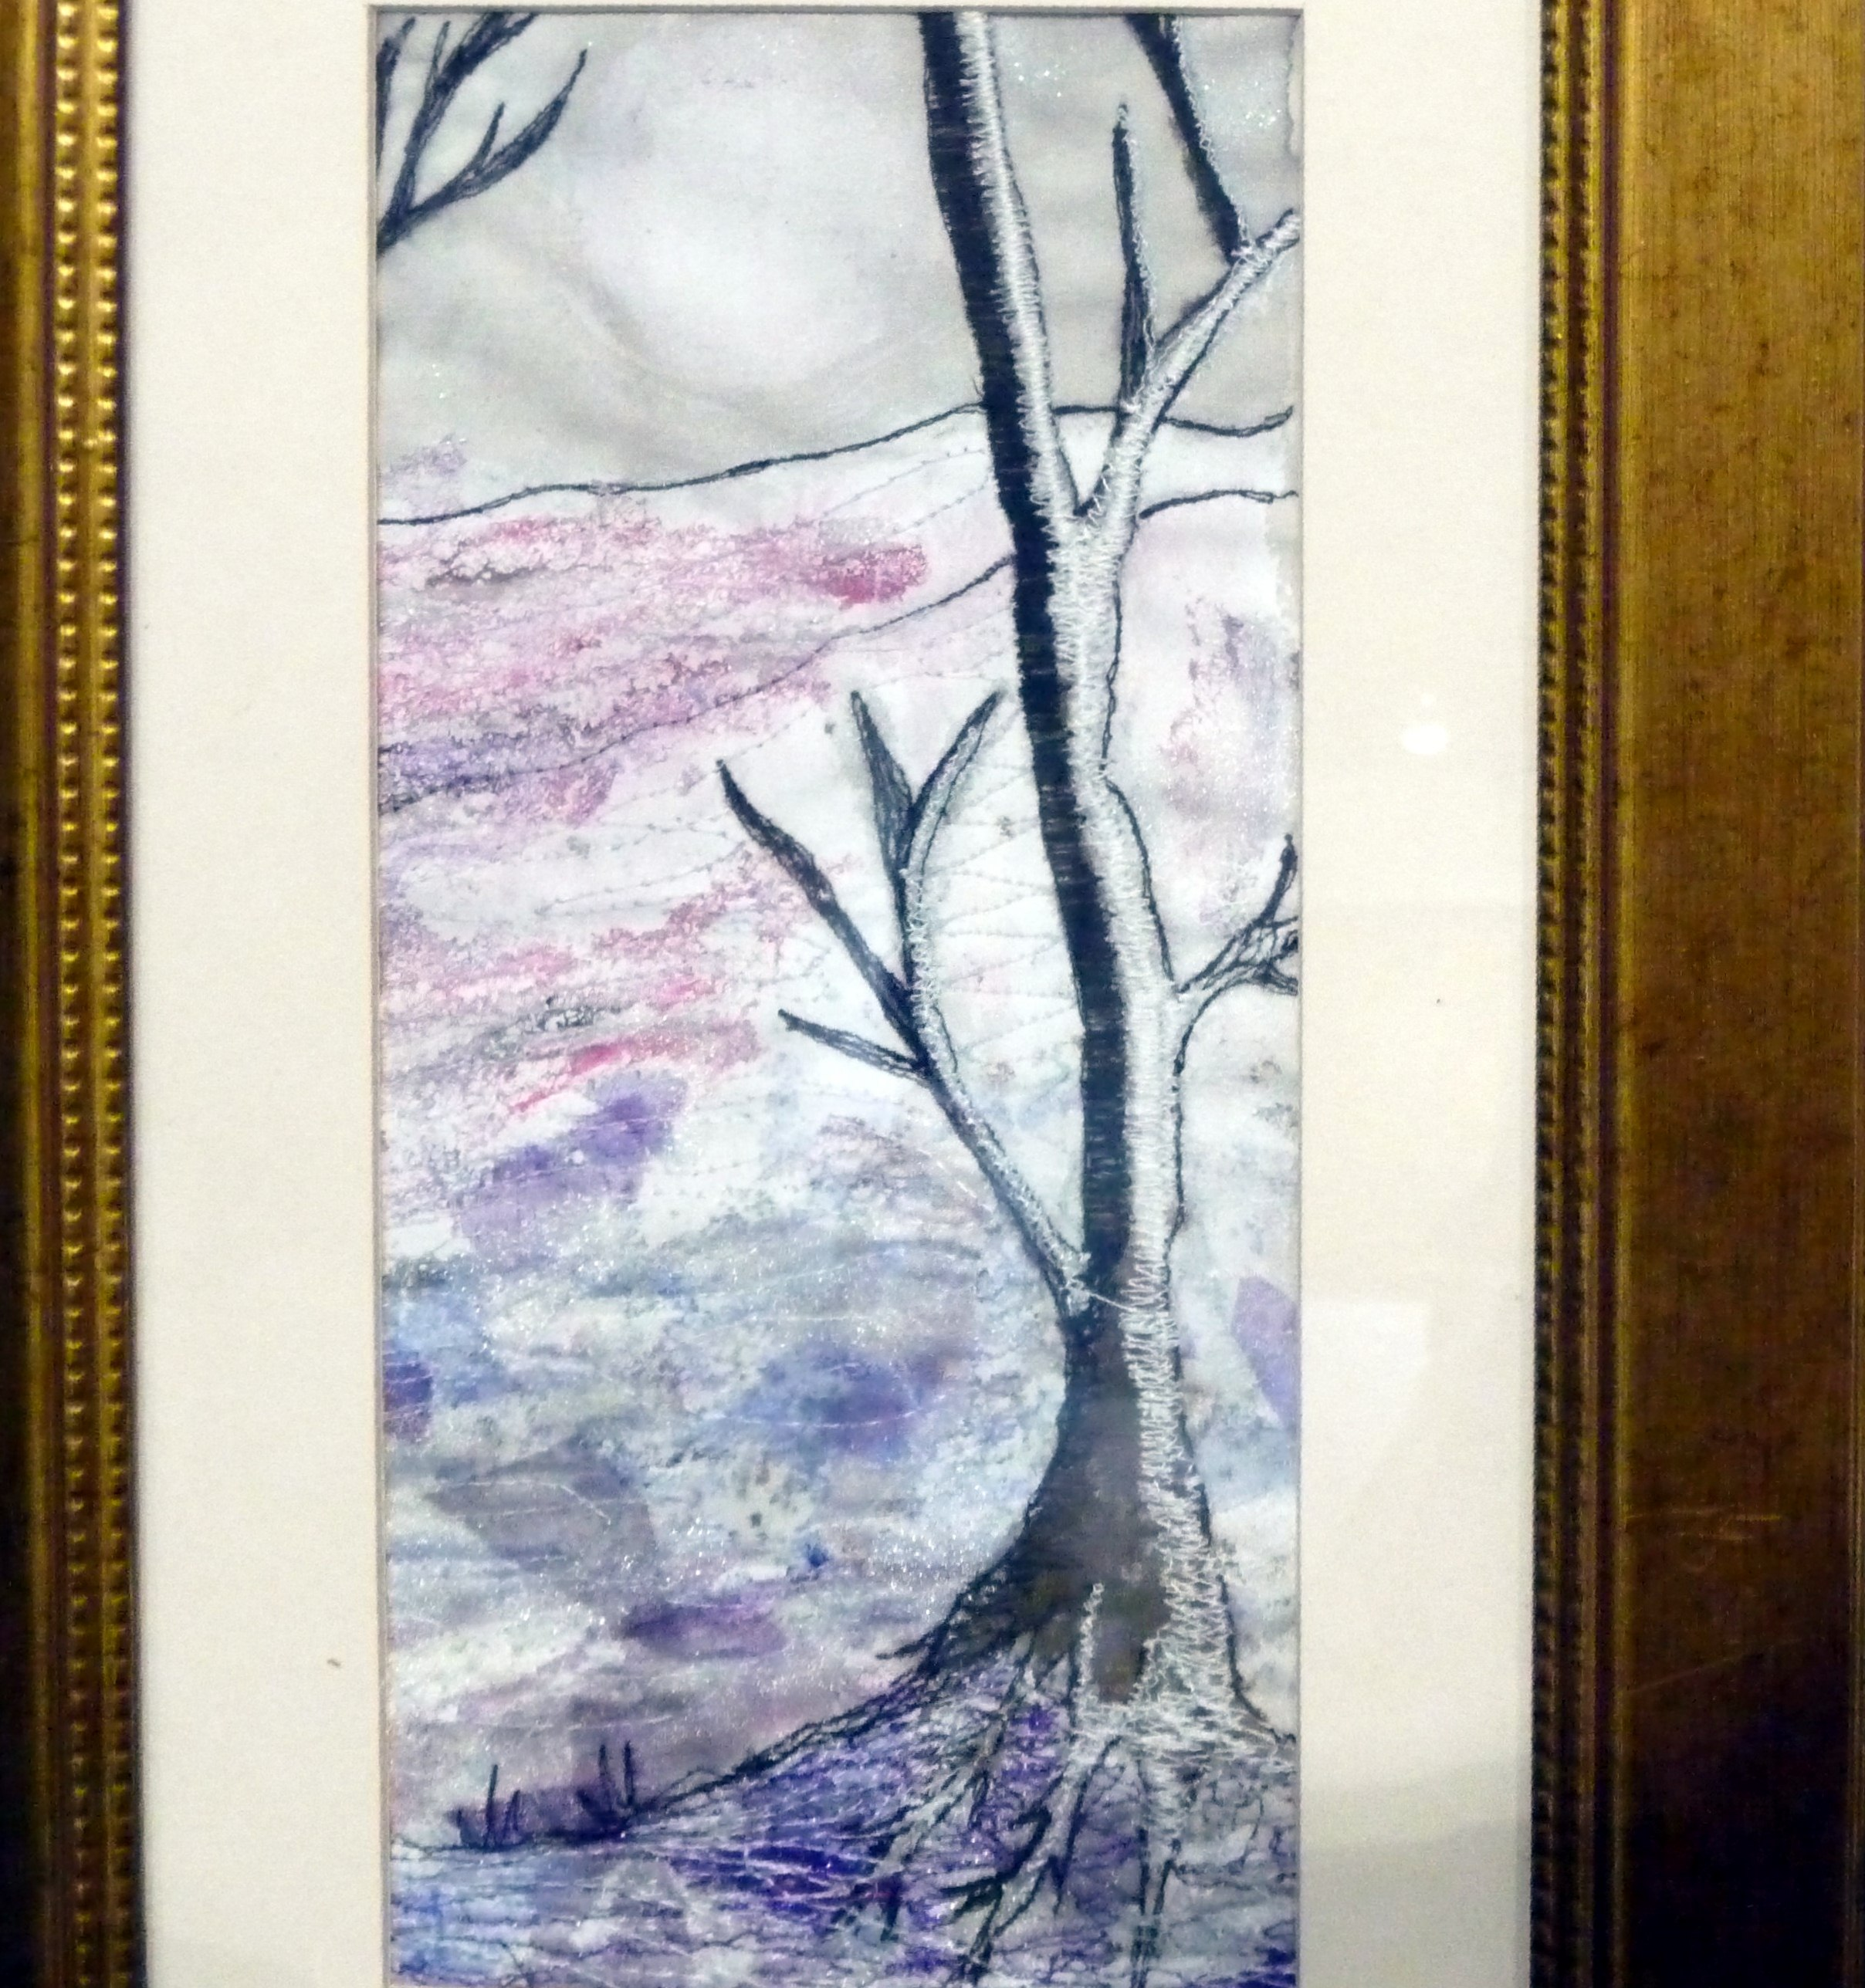 WINTER TREE by Roselie Gardner, machine embroidered fabric painting